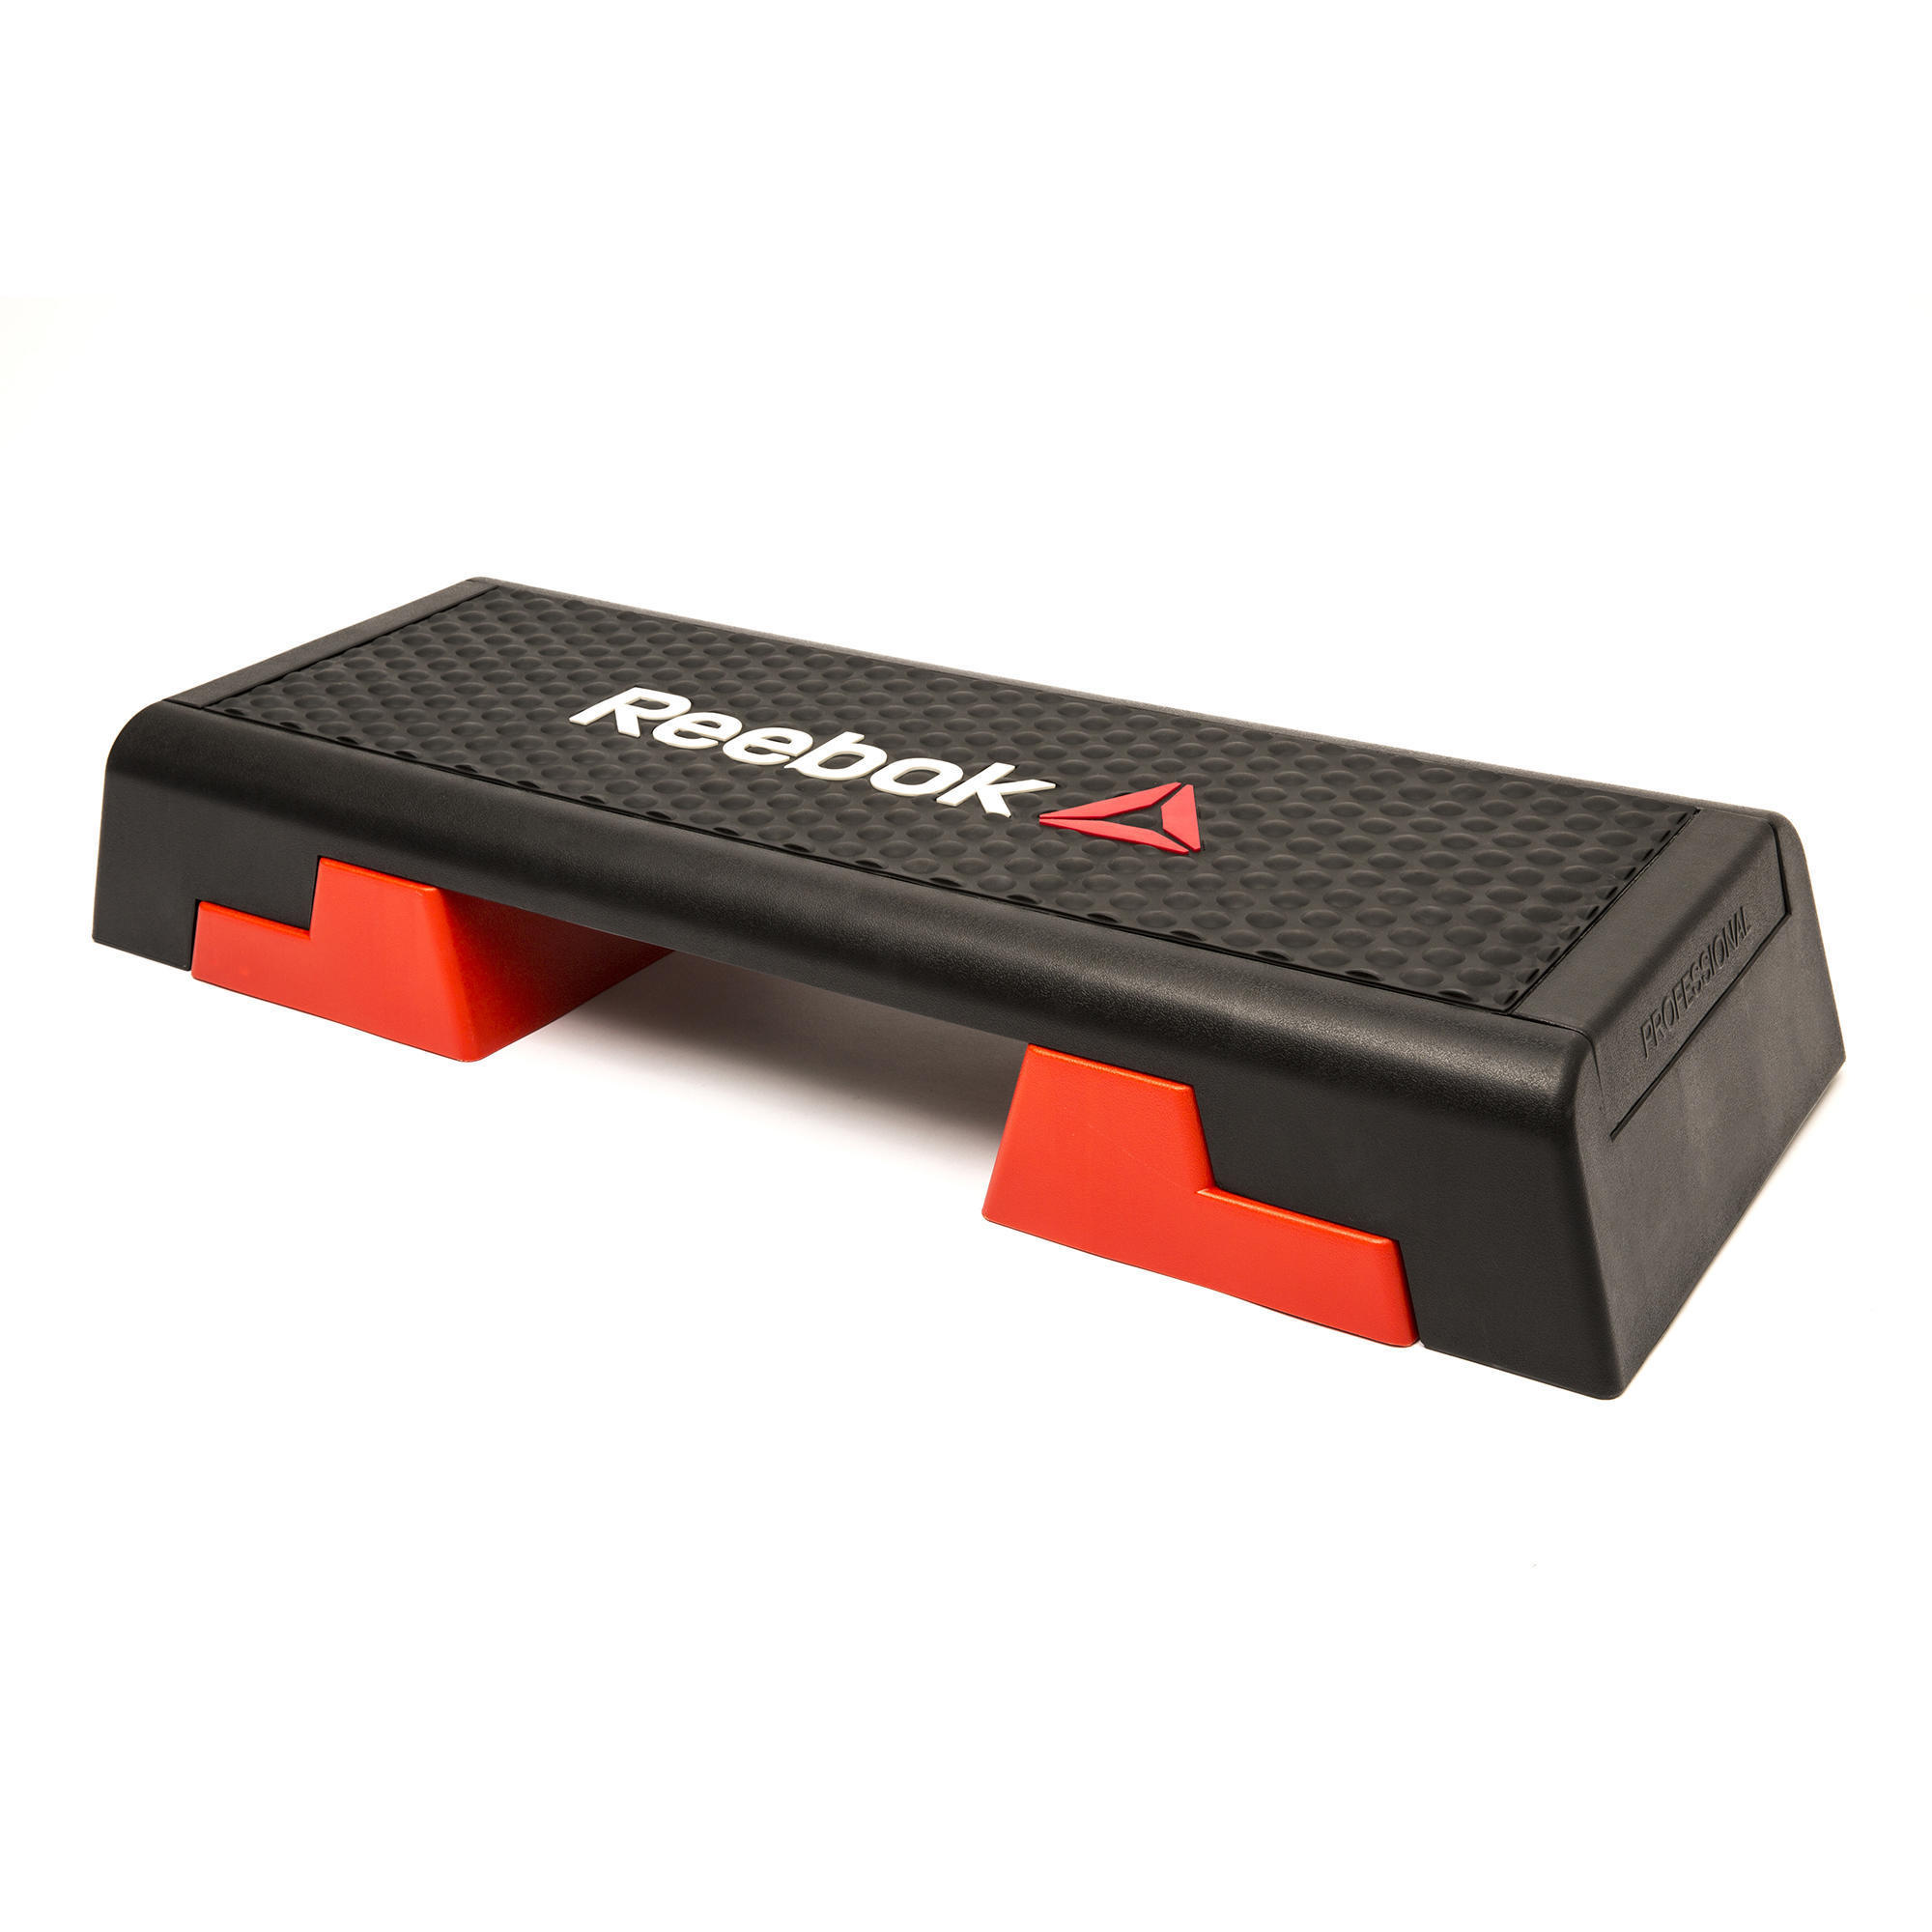 Stepy fitness STEP REEBOK REEBOK | Decathlon